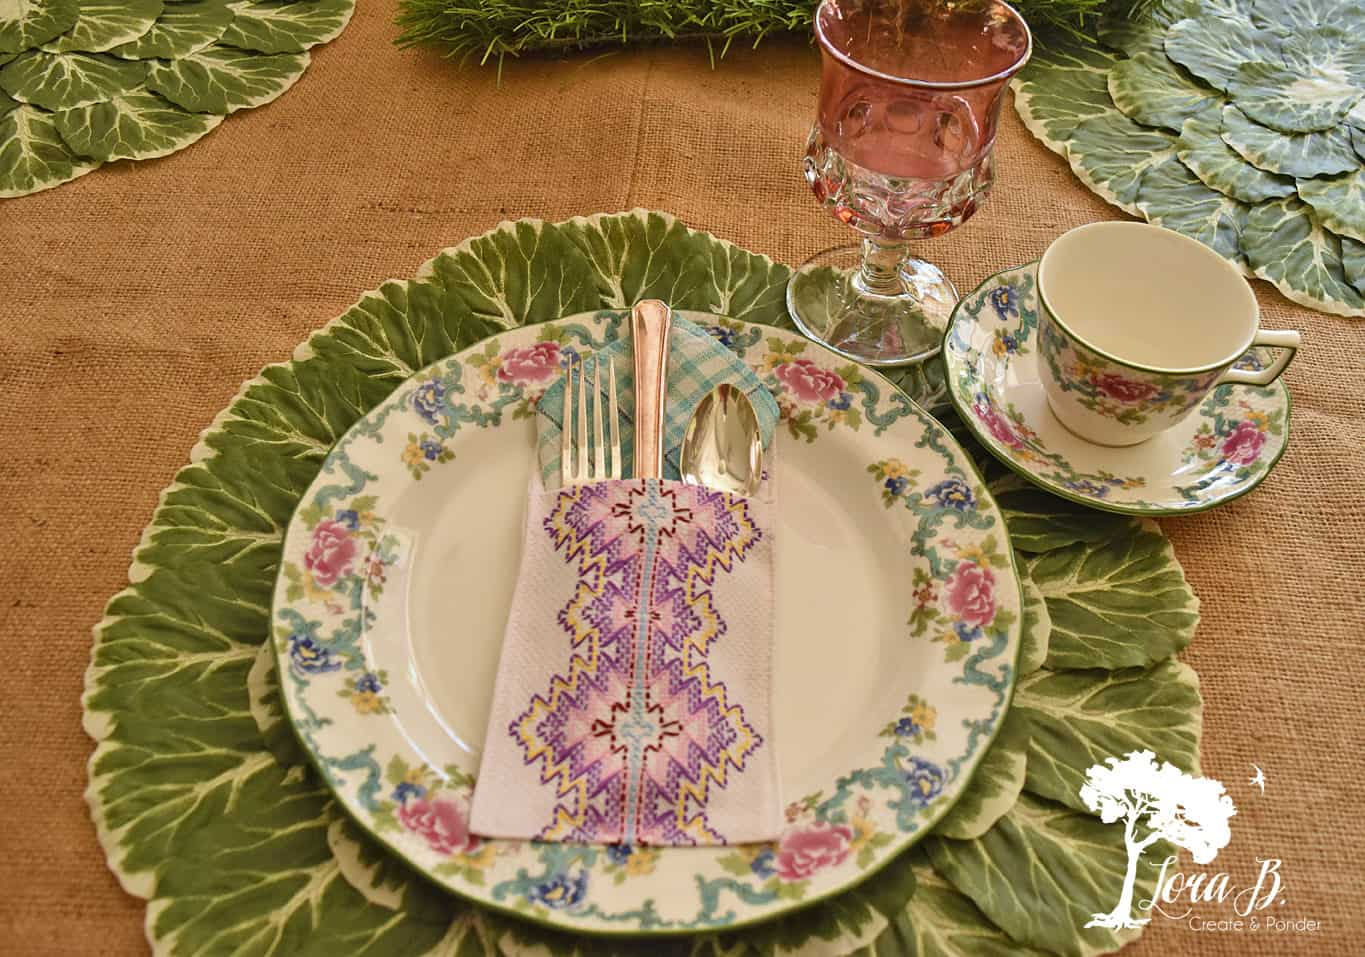 Floral china on a garden-inspired table.